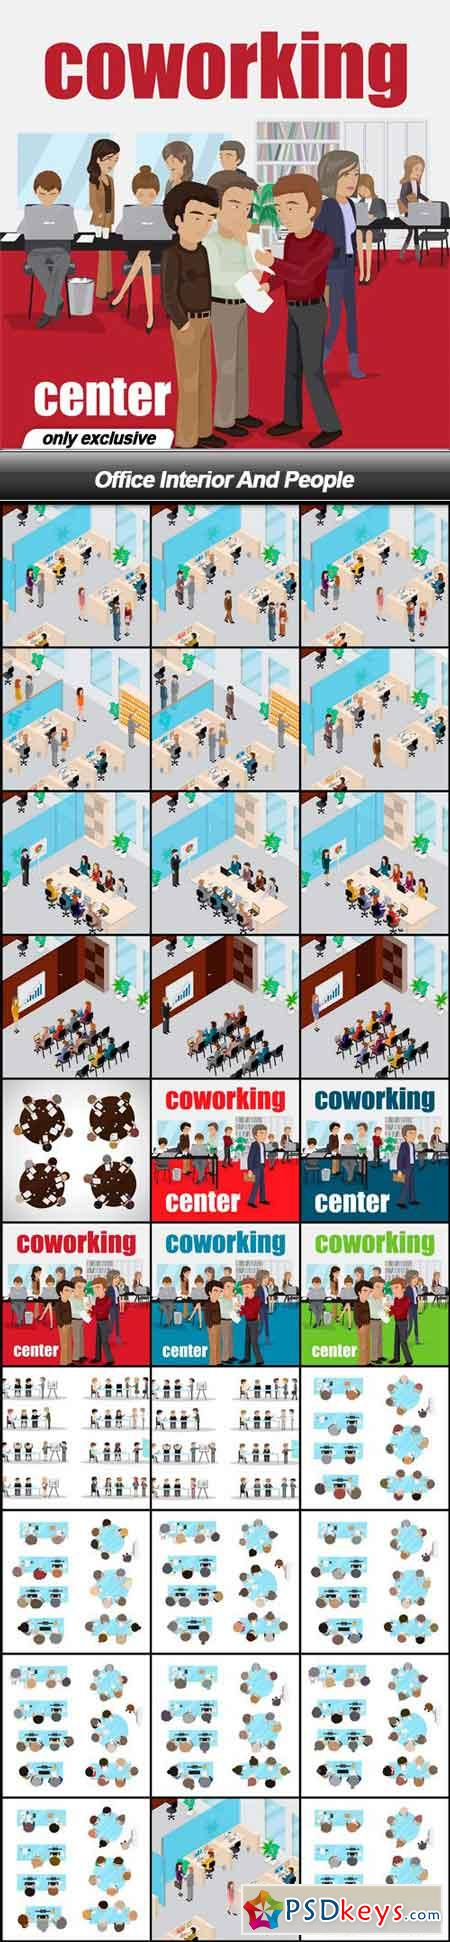 Office Interior And People - 29 EPS